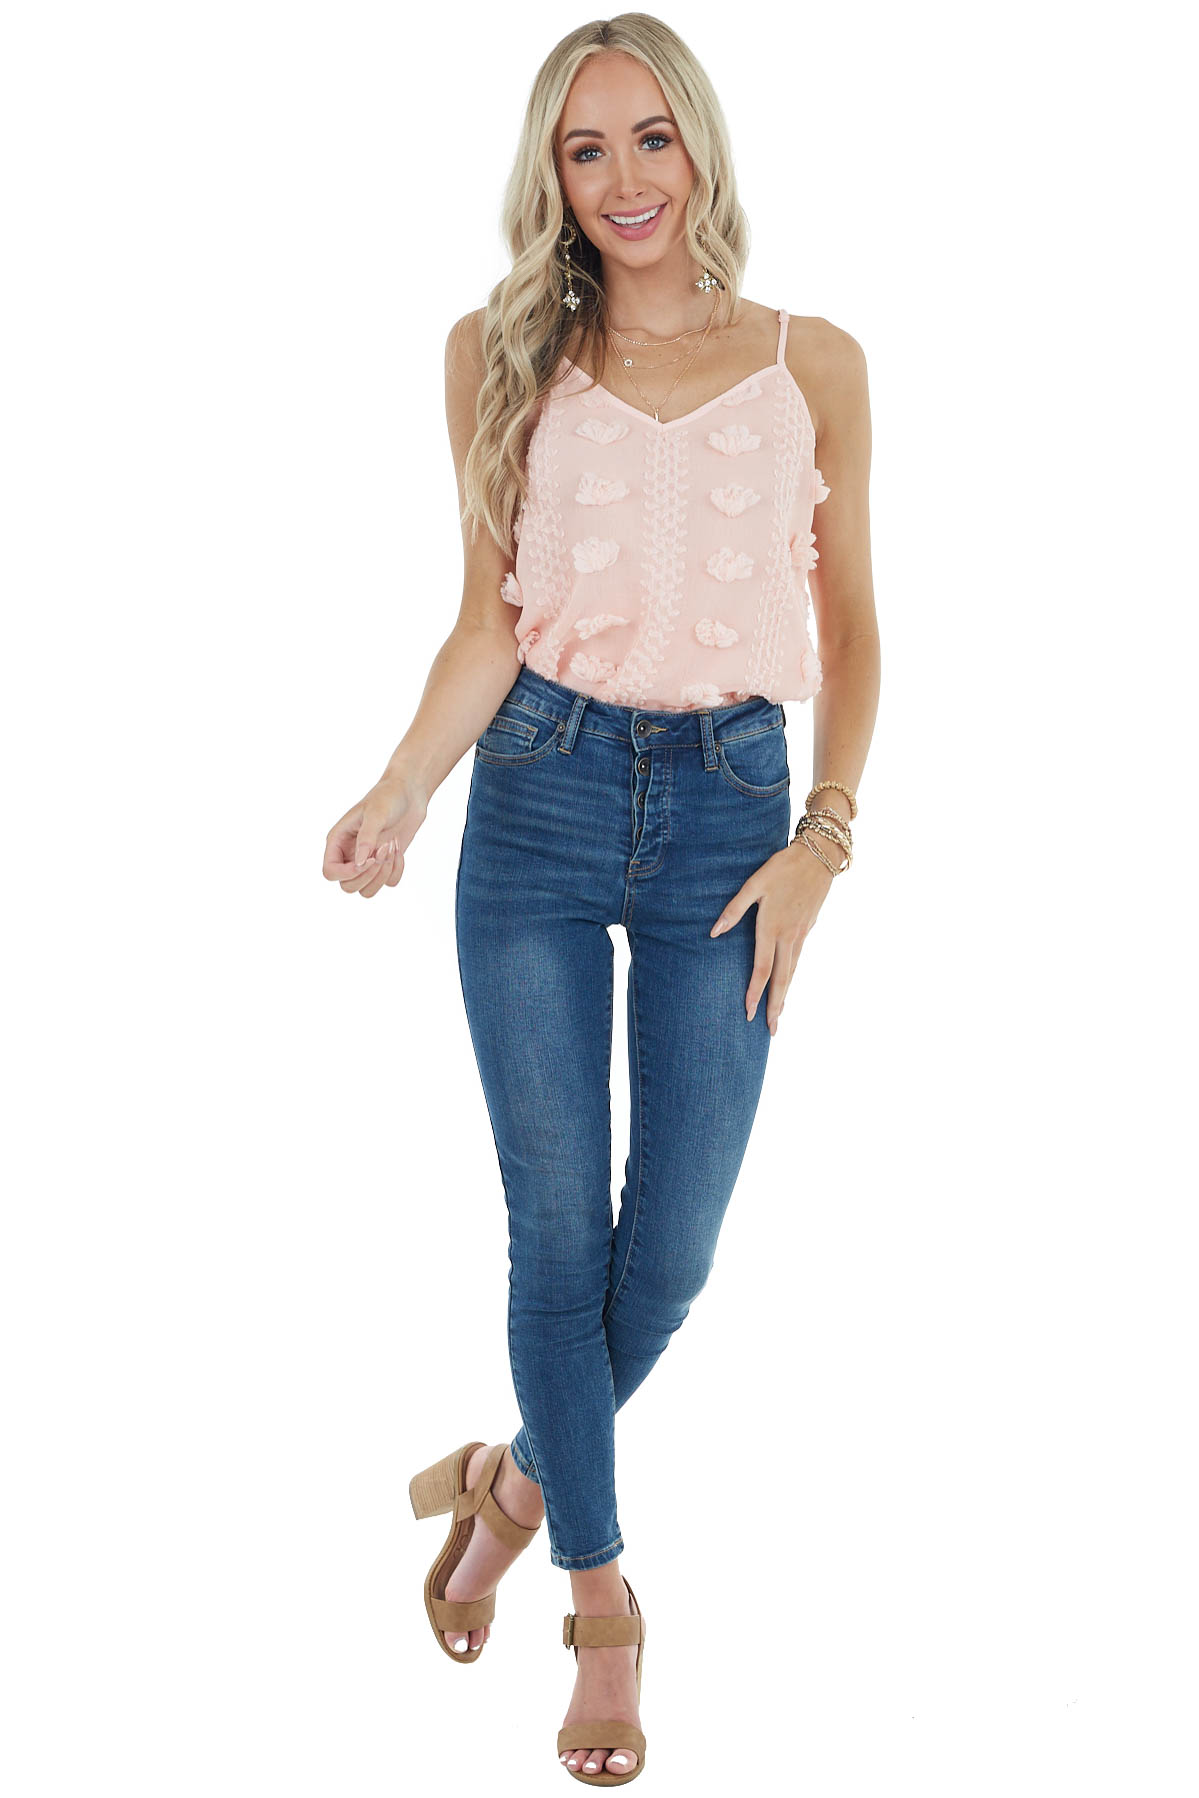 Peach V Neckline Flowy Tank Top with Textured Details